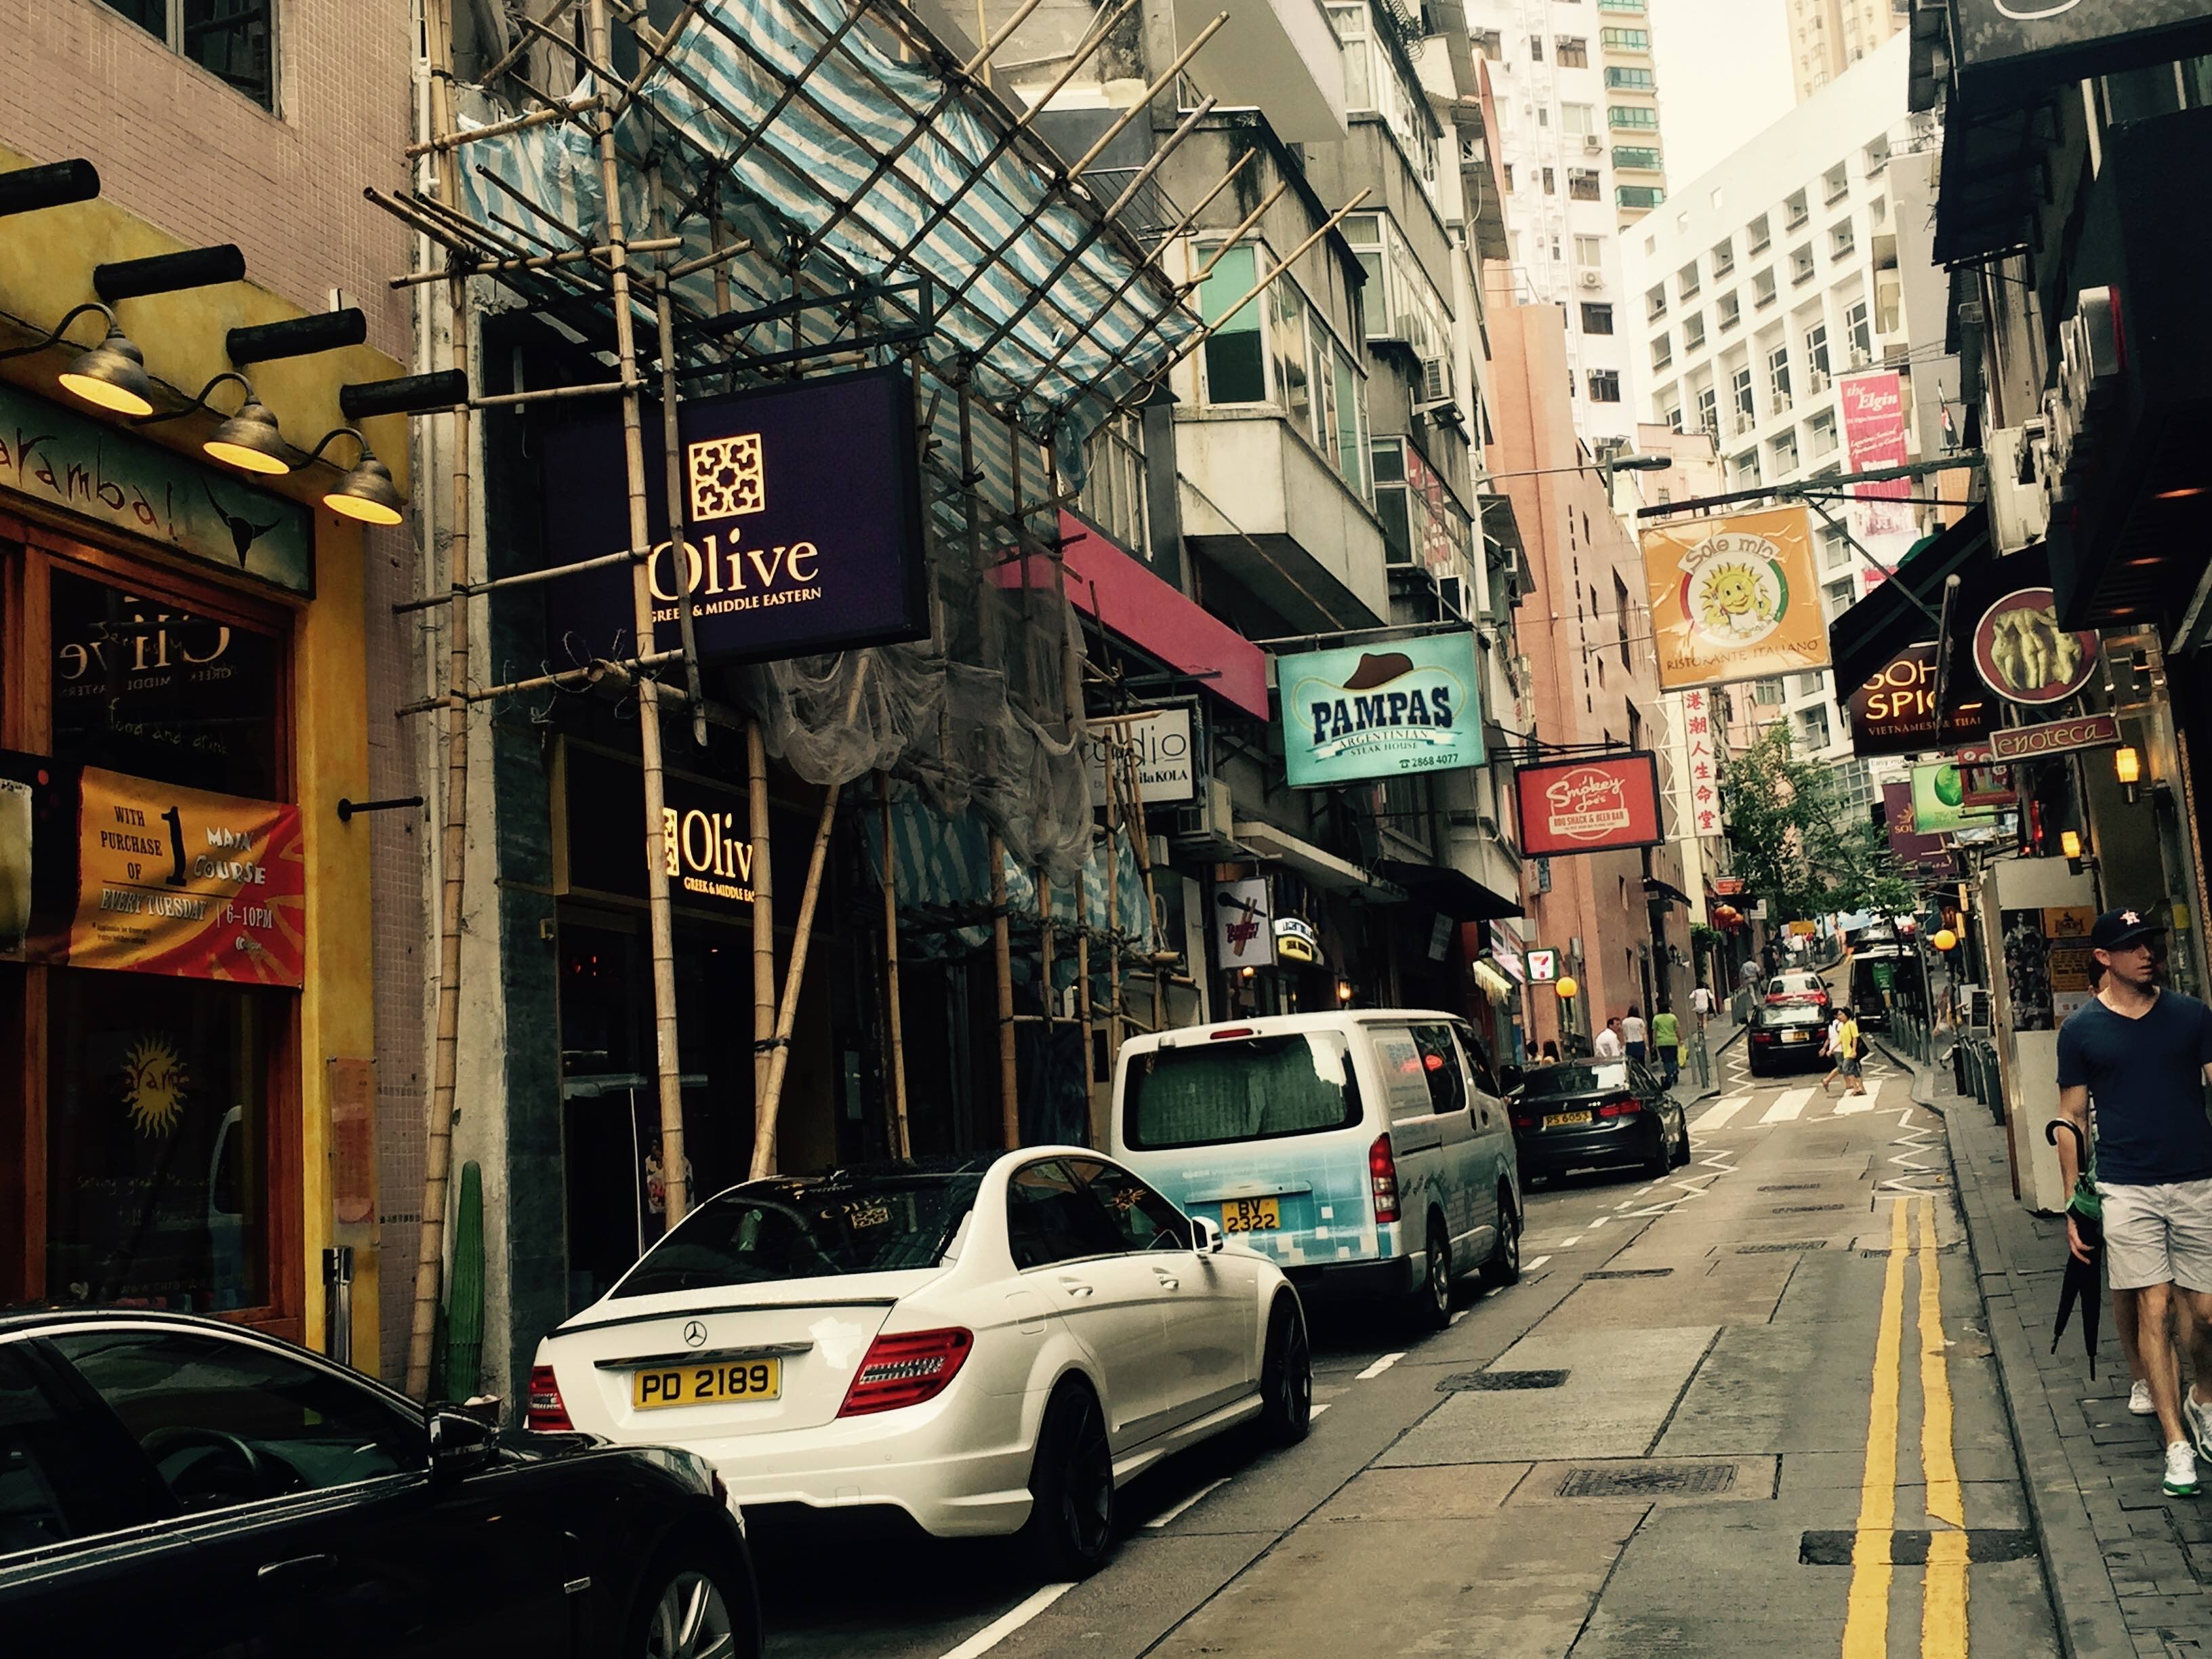 Soho Central Elgin St packed with restaurants and bars HK